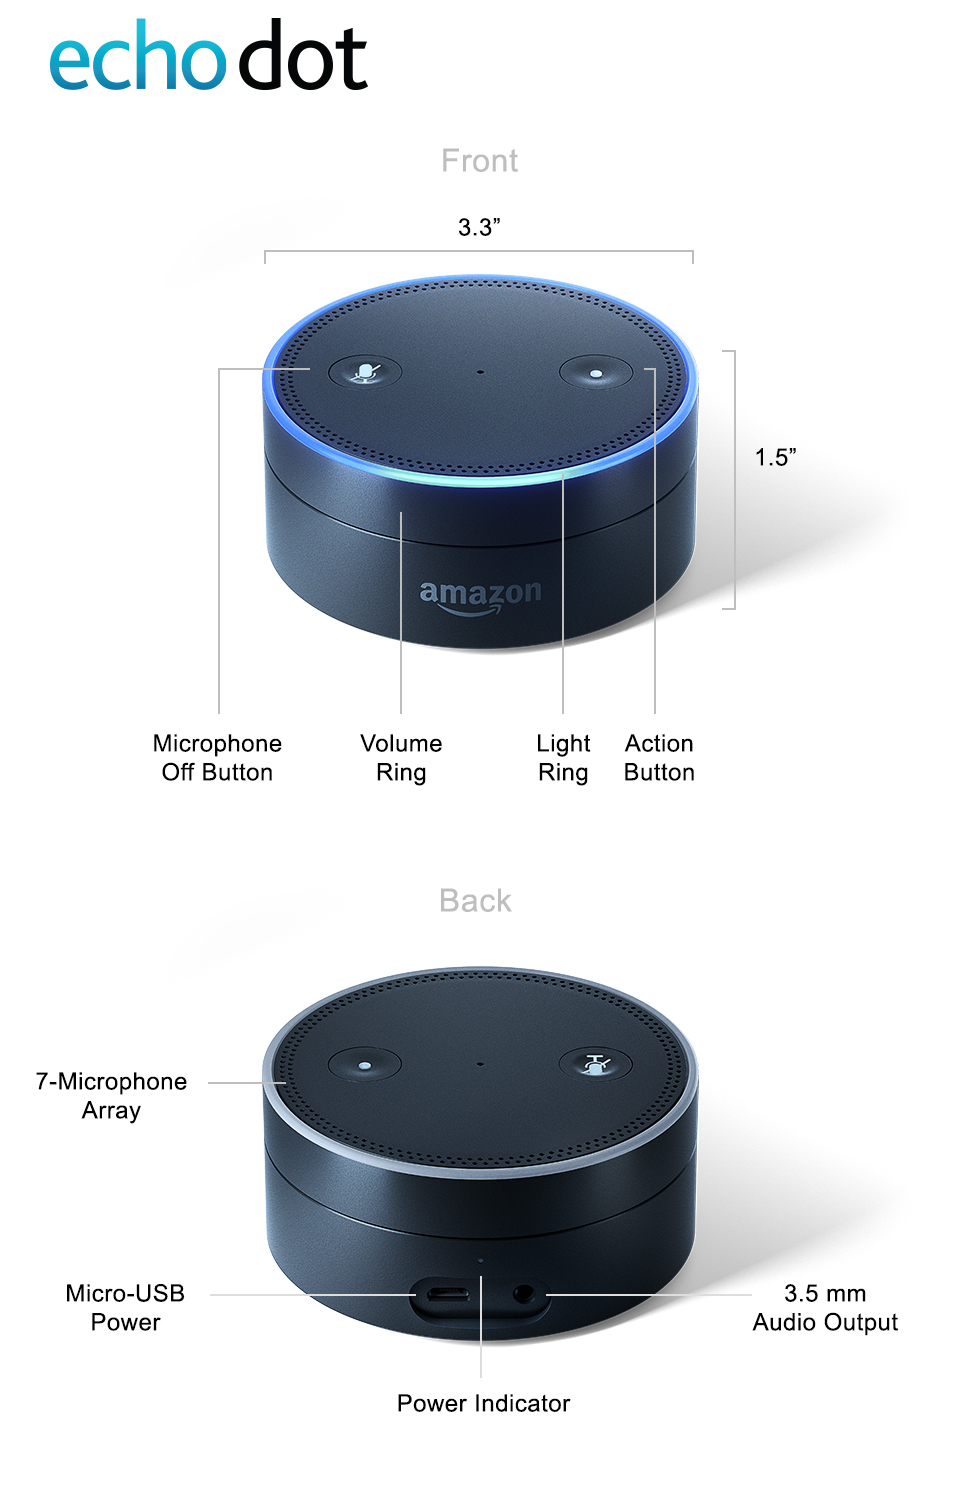 amazon-echo-dot-feature-technicaldetails-v3